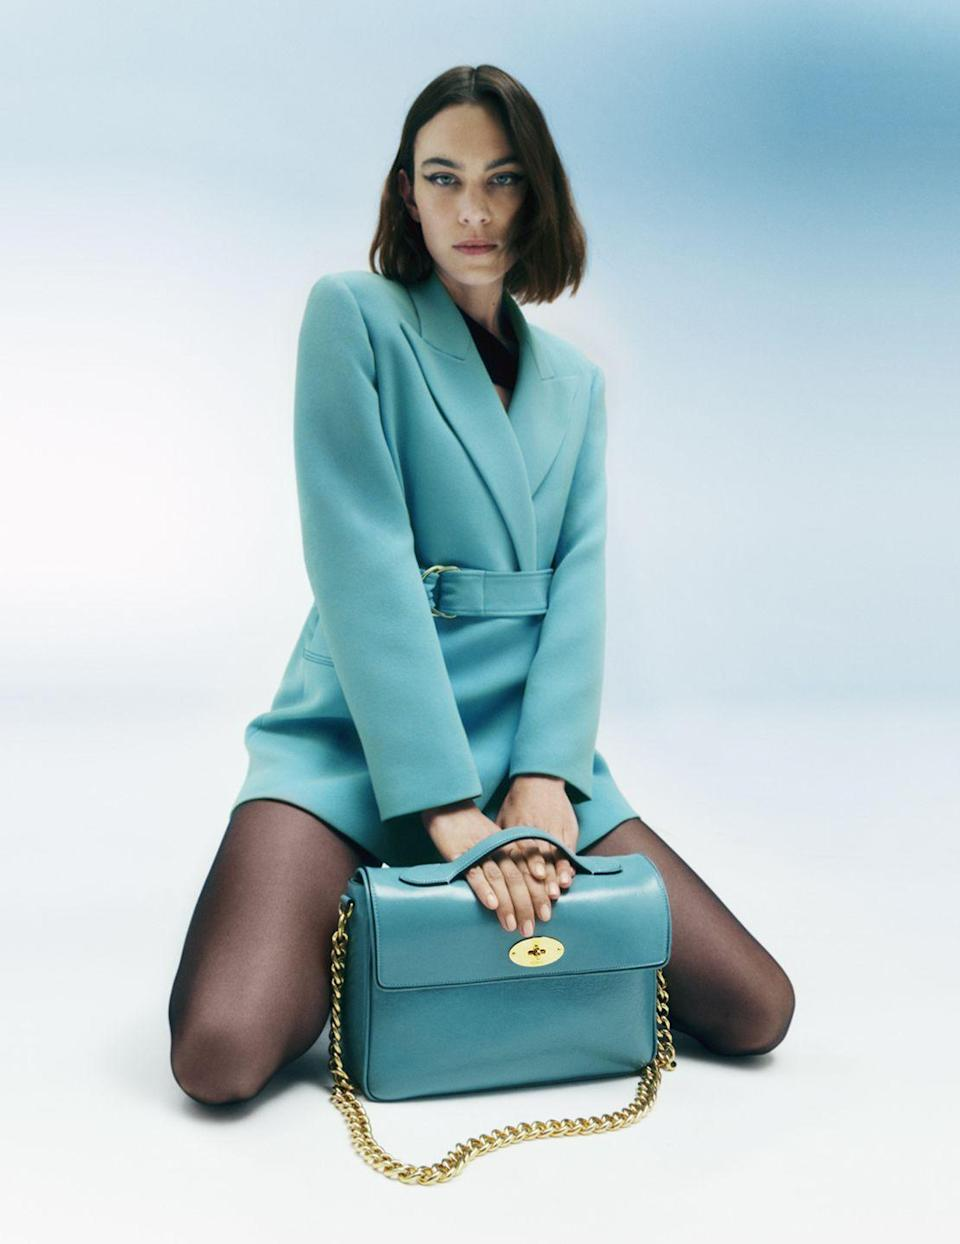 """<p>Longtime muse Alexa Chung - Mulberry's famous 'Alexa' bag is named after her, of course - has, after years of establishing her design credentials with her ALEXACHUNG fashion brand, joined forces with the luxury goods house to co-create a capsule collection of bags.<br></p><p>As part of the Mulberry Editions series, which sees leading creatives invited to put their spin on Mulberry classics, Chung has lent her style tastebuds to reimagine two bags: a shoulder bag called the Big Guy and a compact clutch called the Little Guy.</p><p>Mulberry's ongoing commitment to sustainability and responsible manufacturing is also reflected, considering that the bags are crafted from materials which are sourced from environmentally rated tanneries and are made in Mulberry's carbon neutral Somerset factories.</p><p><a class=""""link rapid-noclick-resp"""" href=""""https://go.redirectingat.com?id=127X1599956&url=https%3A%2F%2Fwww.mulberry.com%2Fgb%2Fmulberry-world%2Fdesign-icons%2Falexa-chung&sref=https%3A%2F%2Fwww.elle.com%2Fuk%2Ffashion%2Fg31095508%2Findustry-update%2F"""" rel=""""nofollow noopener"""" target=""""_blank"""" data-ylk=""""slk:SHOP THE CAPSULE"""">SHOP THE CAPSULE</a></p>"""